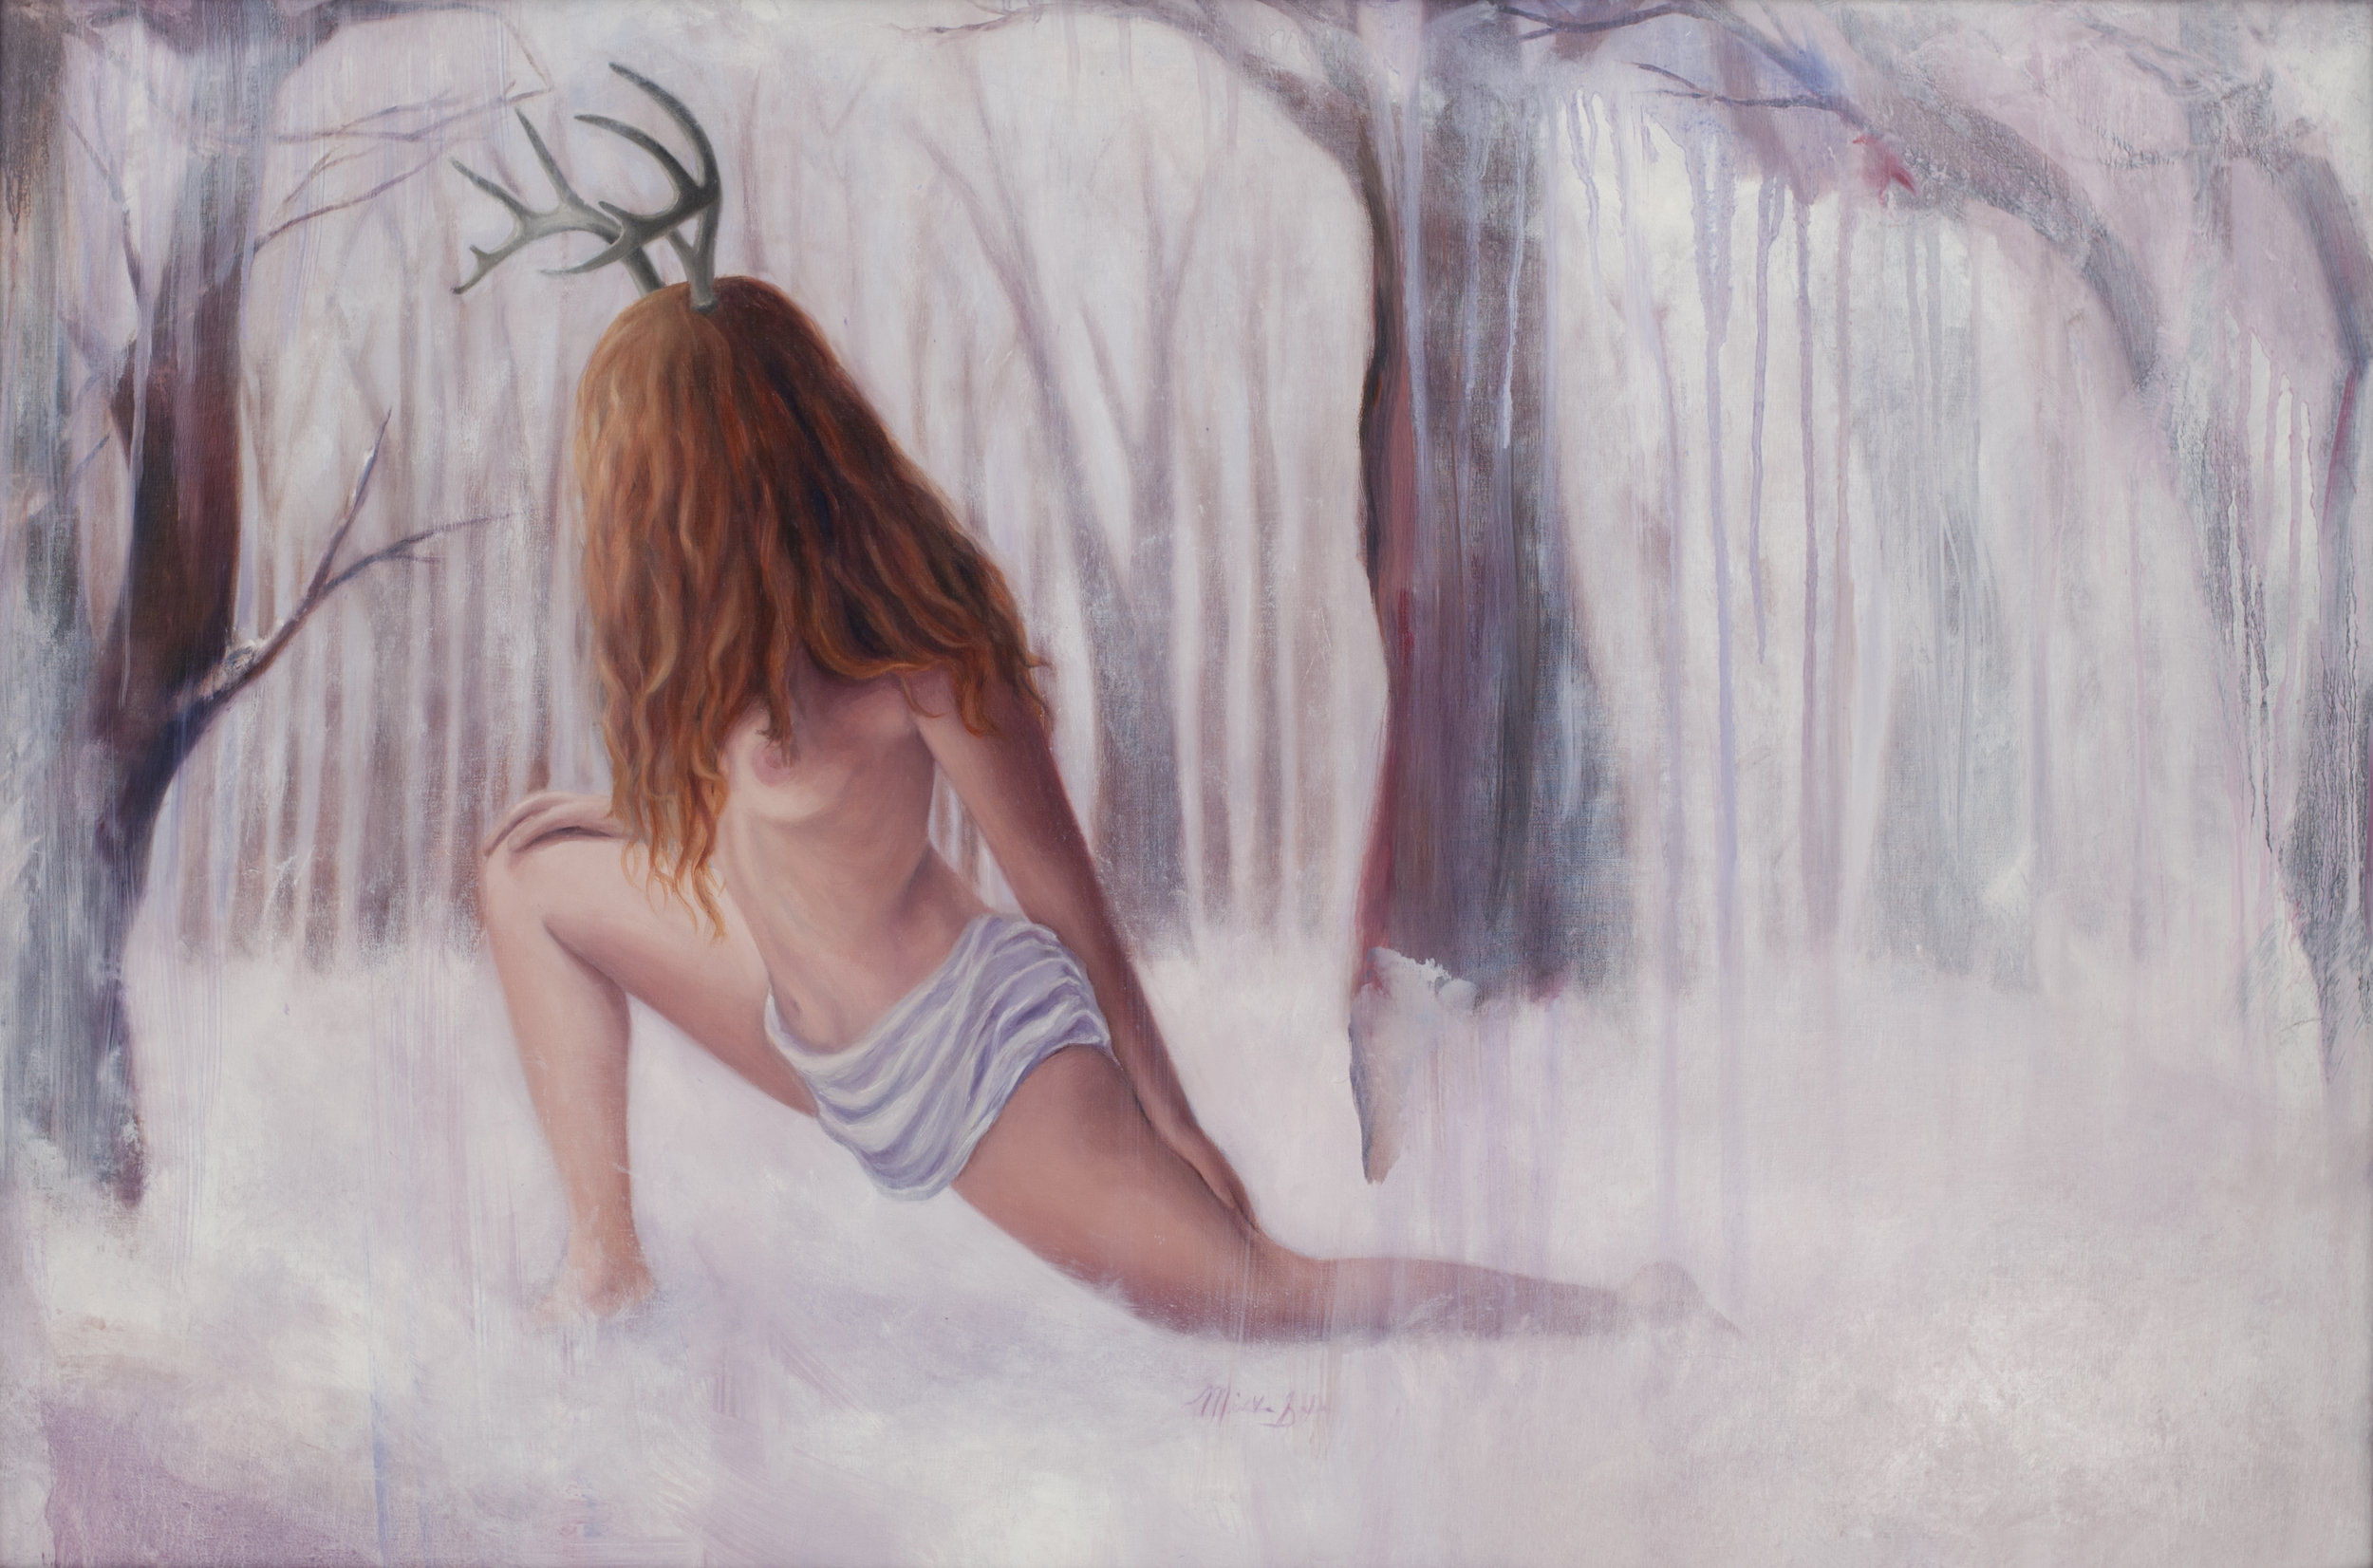 Winter Solitude , 2015. Oil on panel. 24 x 36 inches.